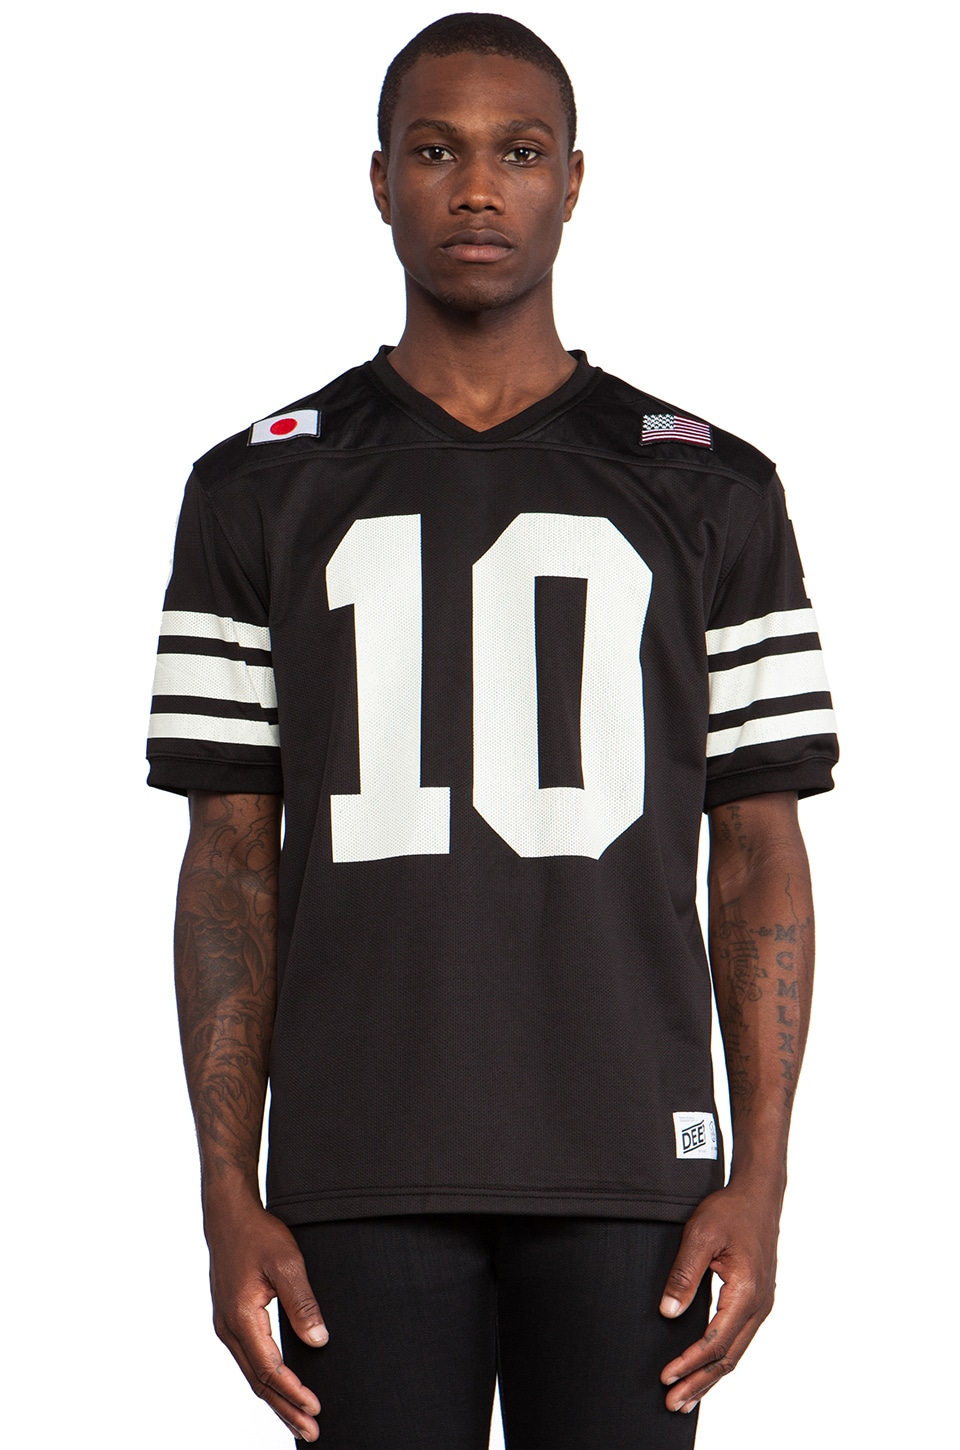 10 Deep X-League Jersey in Black